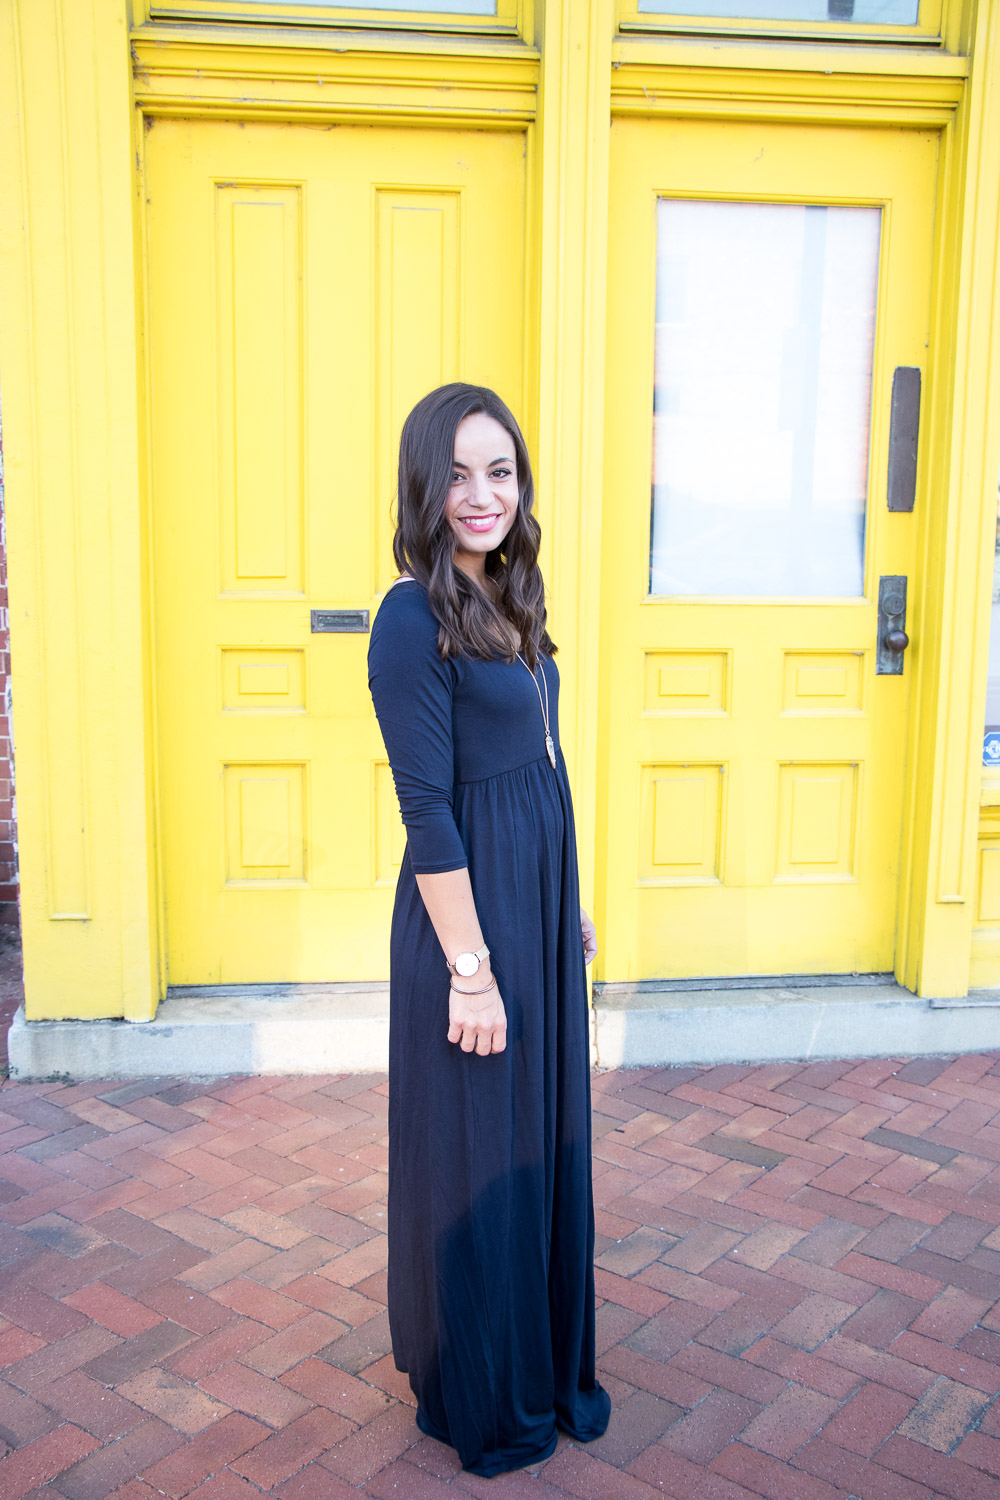 Stay At Home Mom Outfit - Maxi Dress